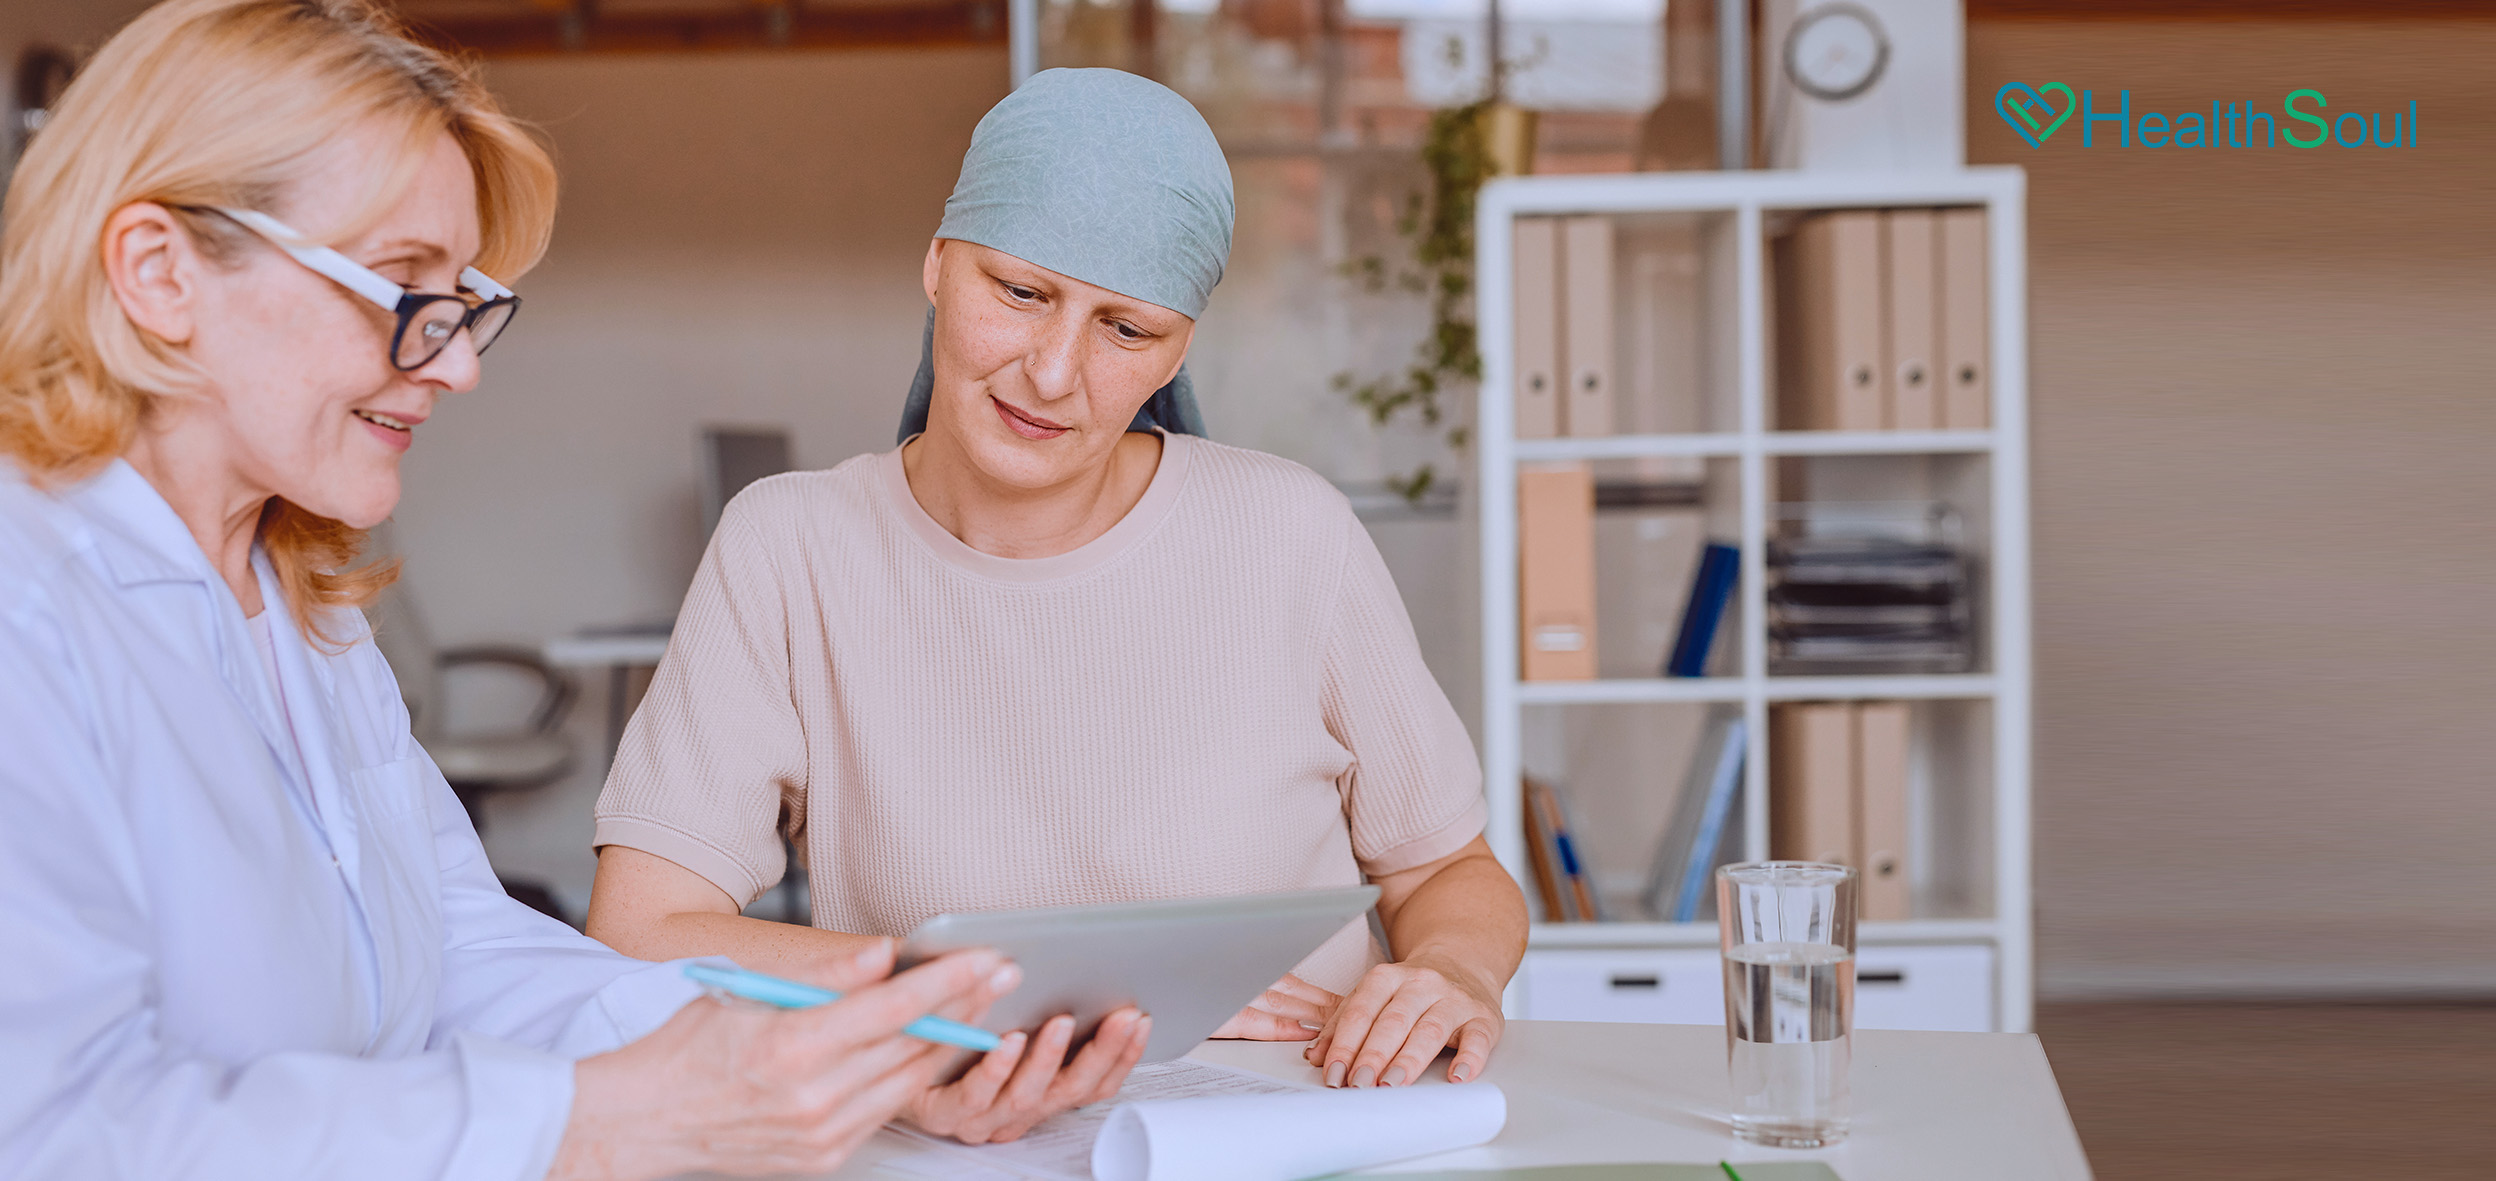 What Exactly is Chemotherapy - 5 Things You Need to Know | HealthSoul